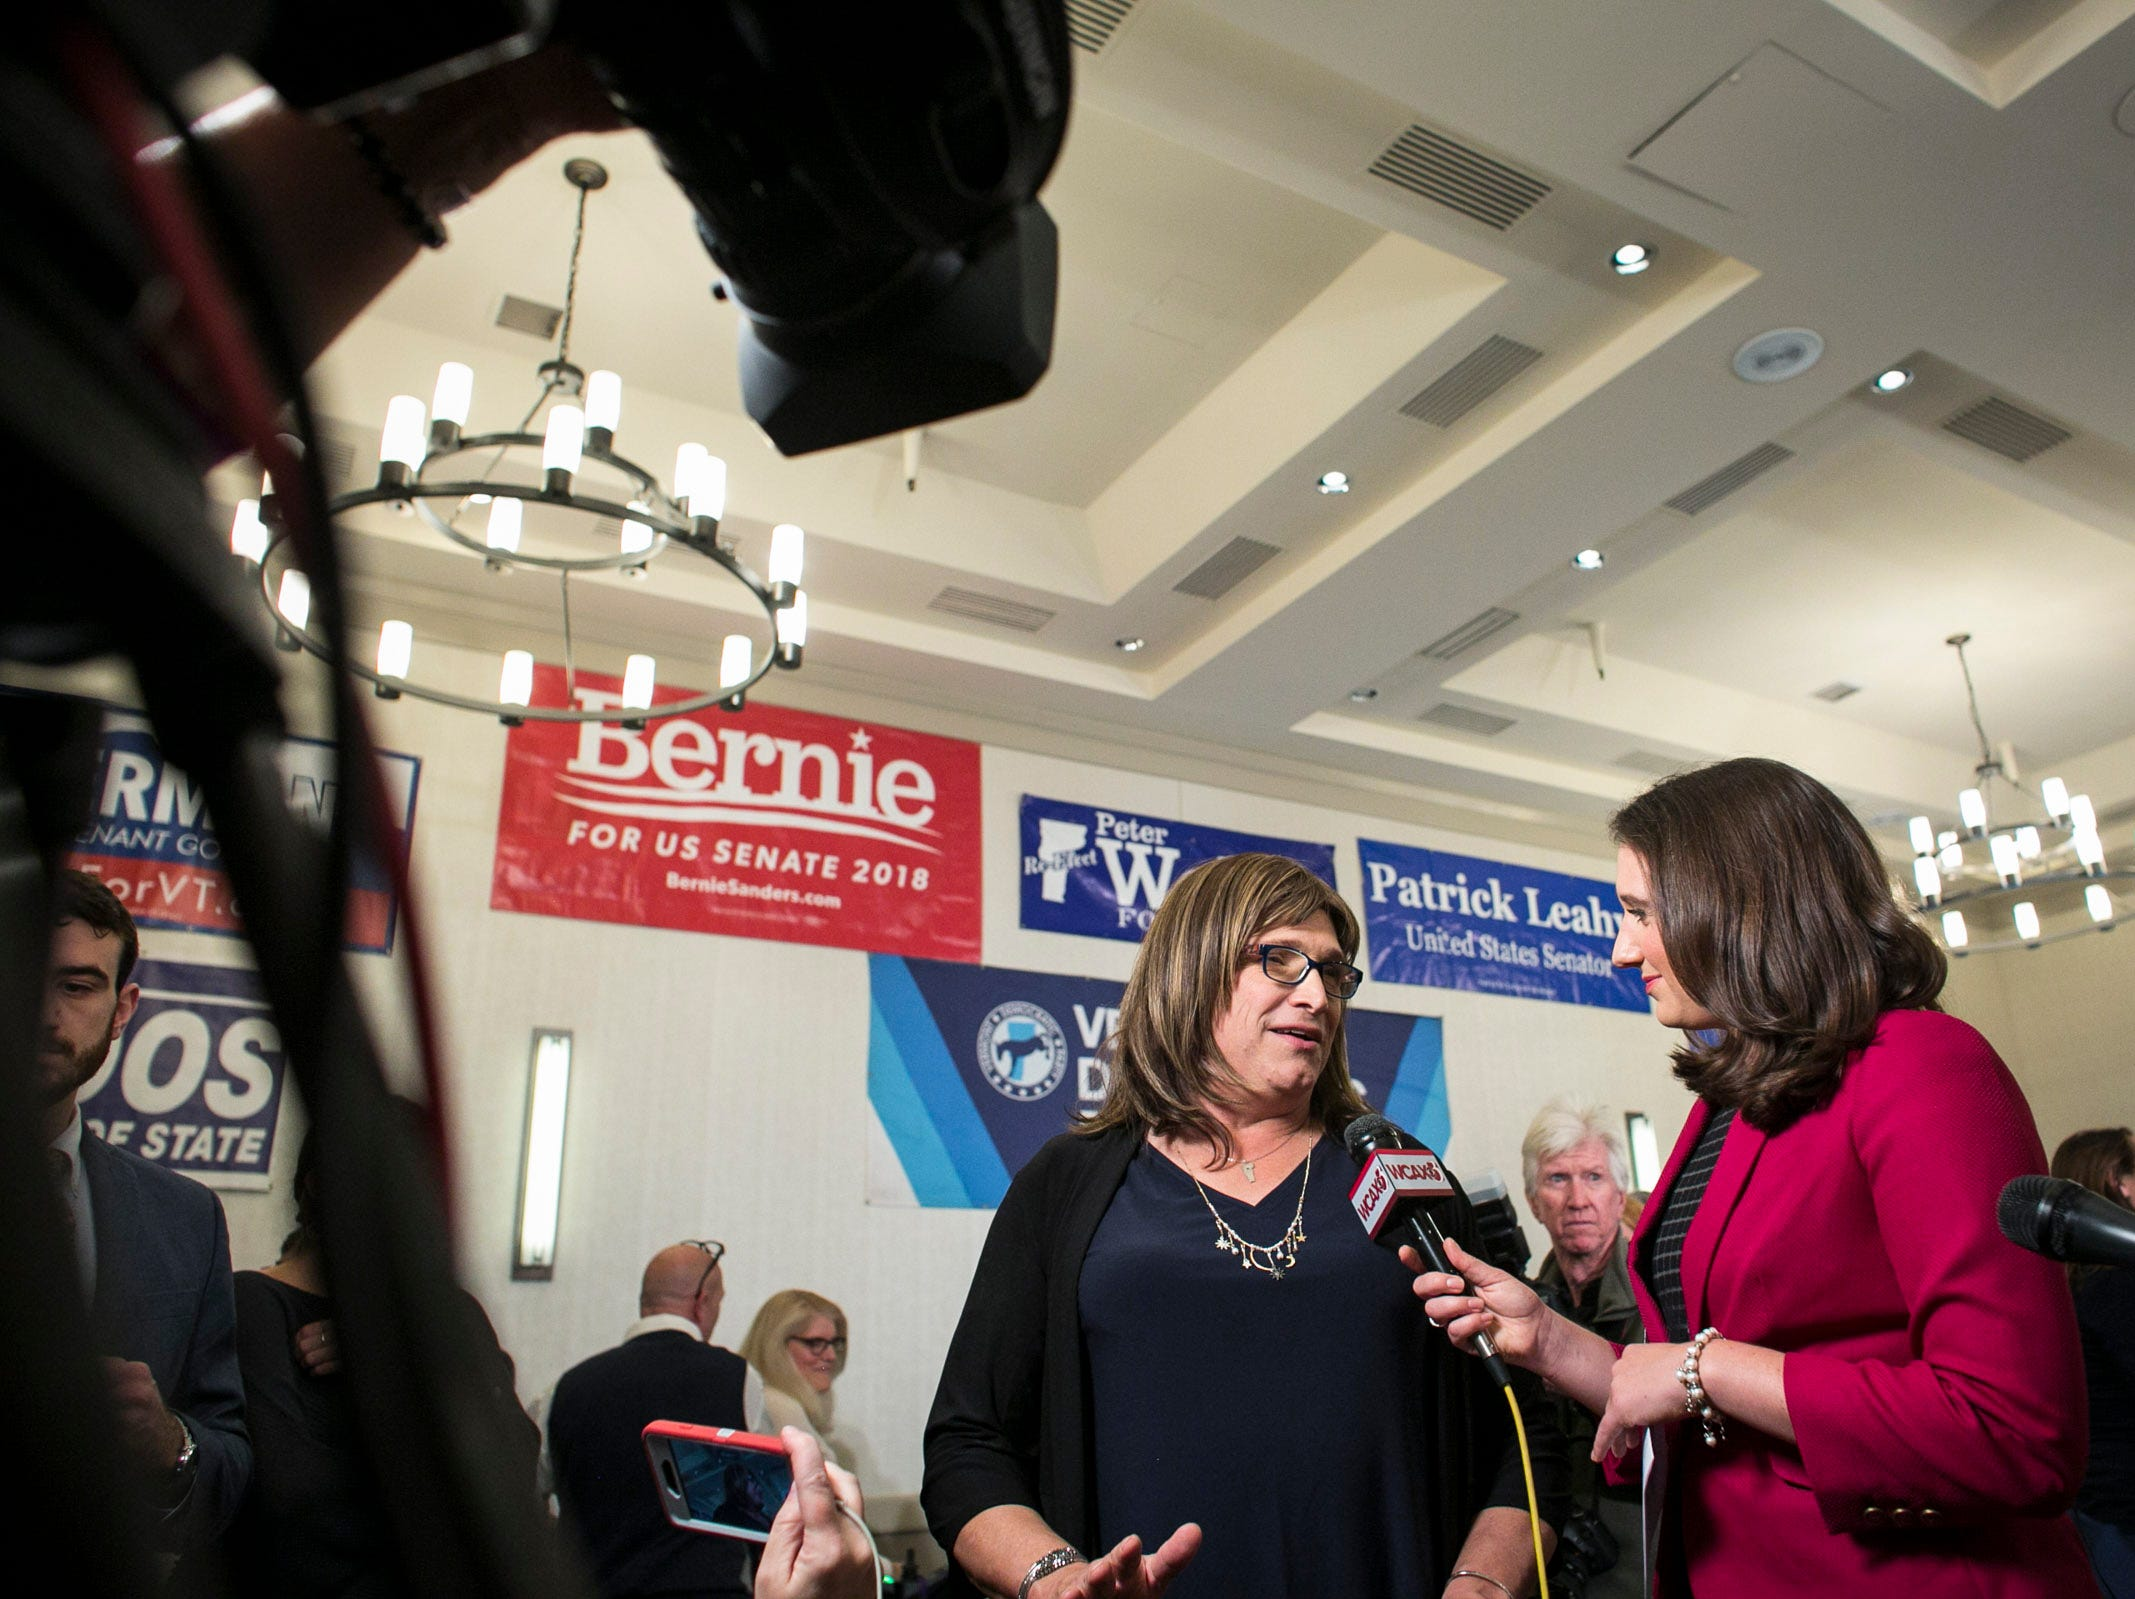 Democratic candidate for governor Christine Hallquist speaks to media at the Hilton in Burlington, Vermont on Tuesday, November 6, 2018.